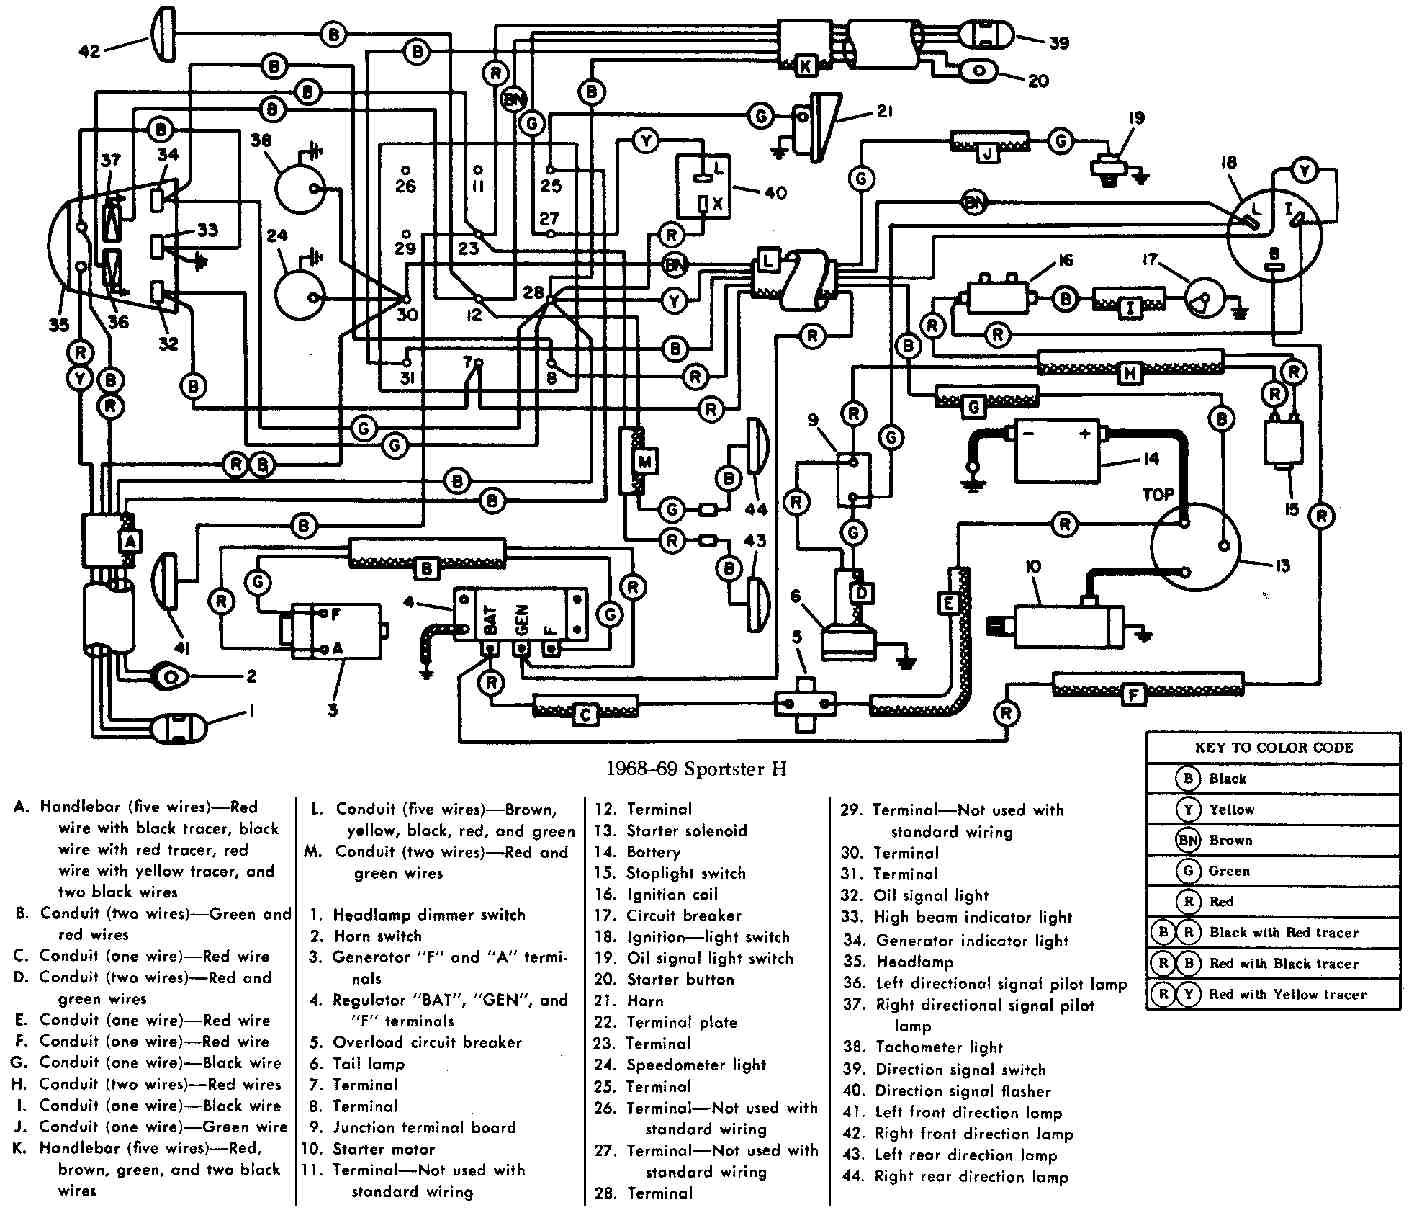 wiring diagram for sprint on ic pin diagram free download wiringwiring diagram for sprint on ic [ 1409 x 1218 Pixel ]